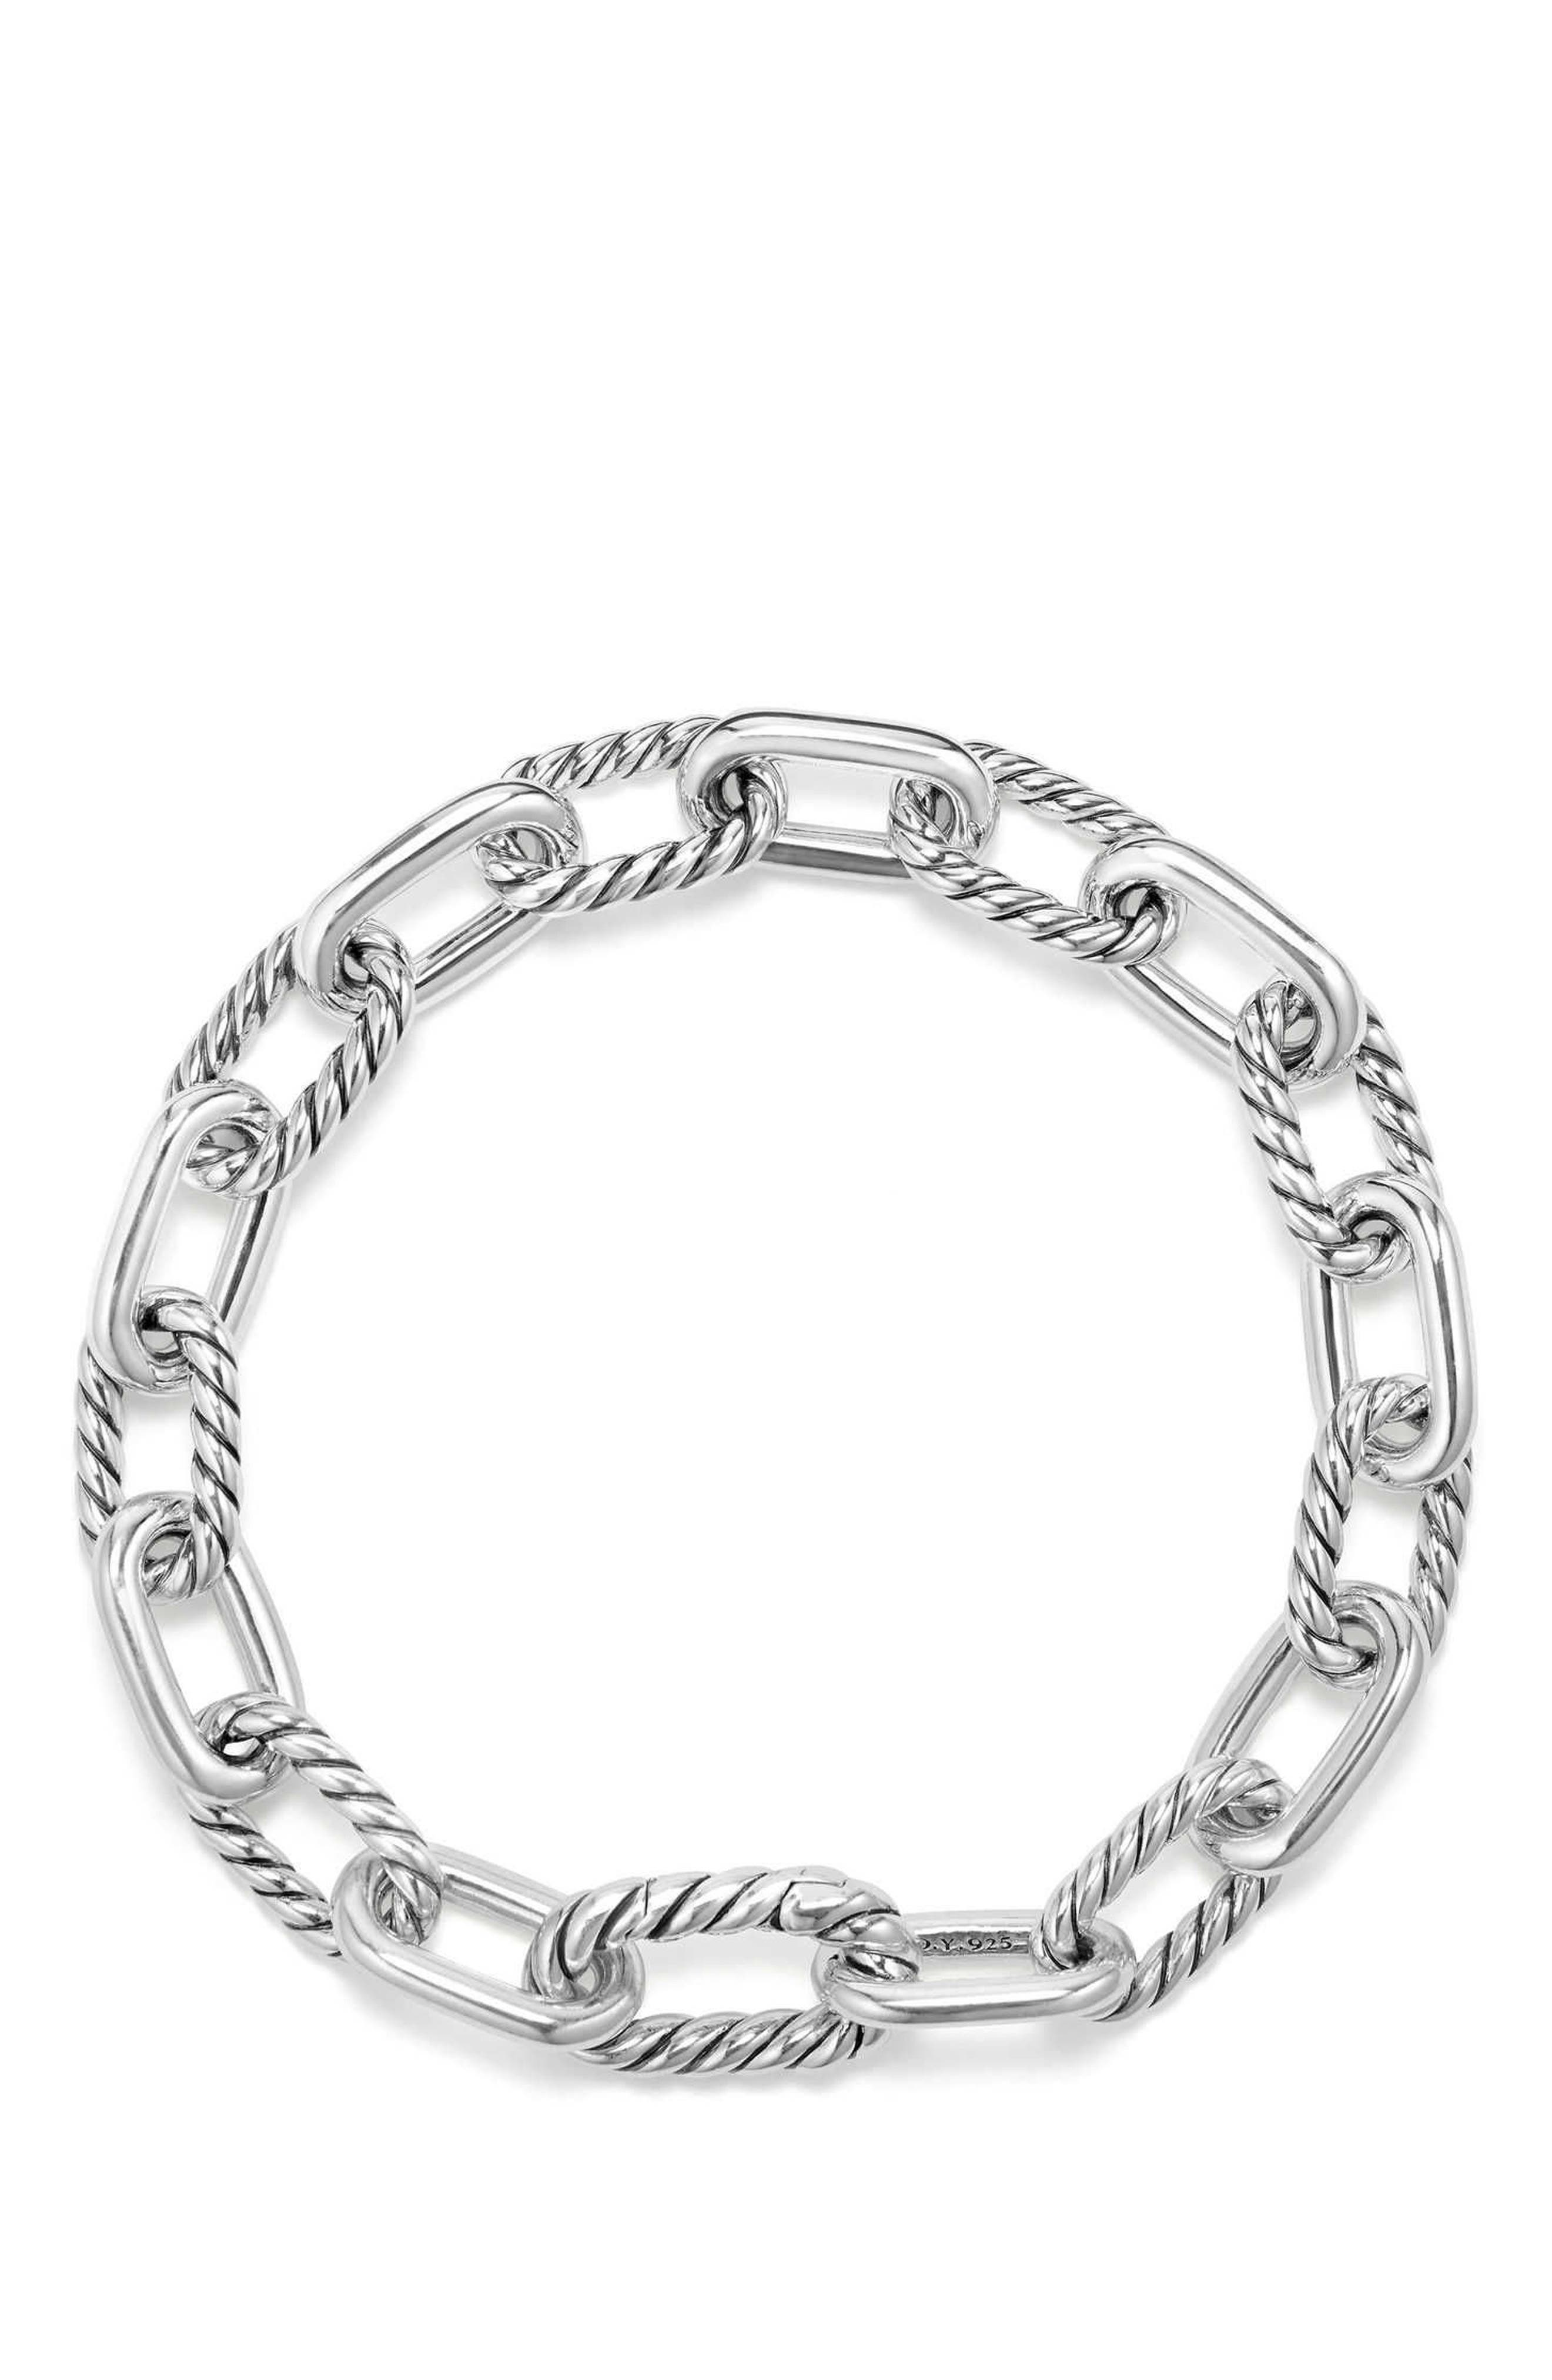 DY Madison Chain Small Bracelet,                             Alternate thumbnail 2, color,                             SILVER